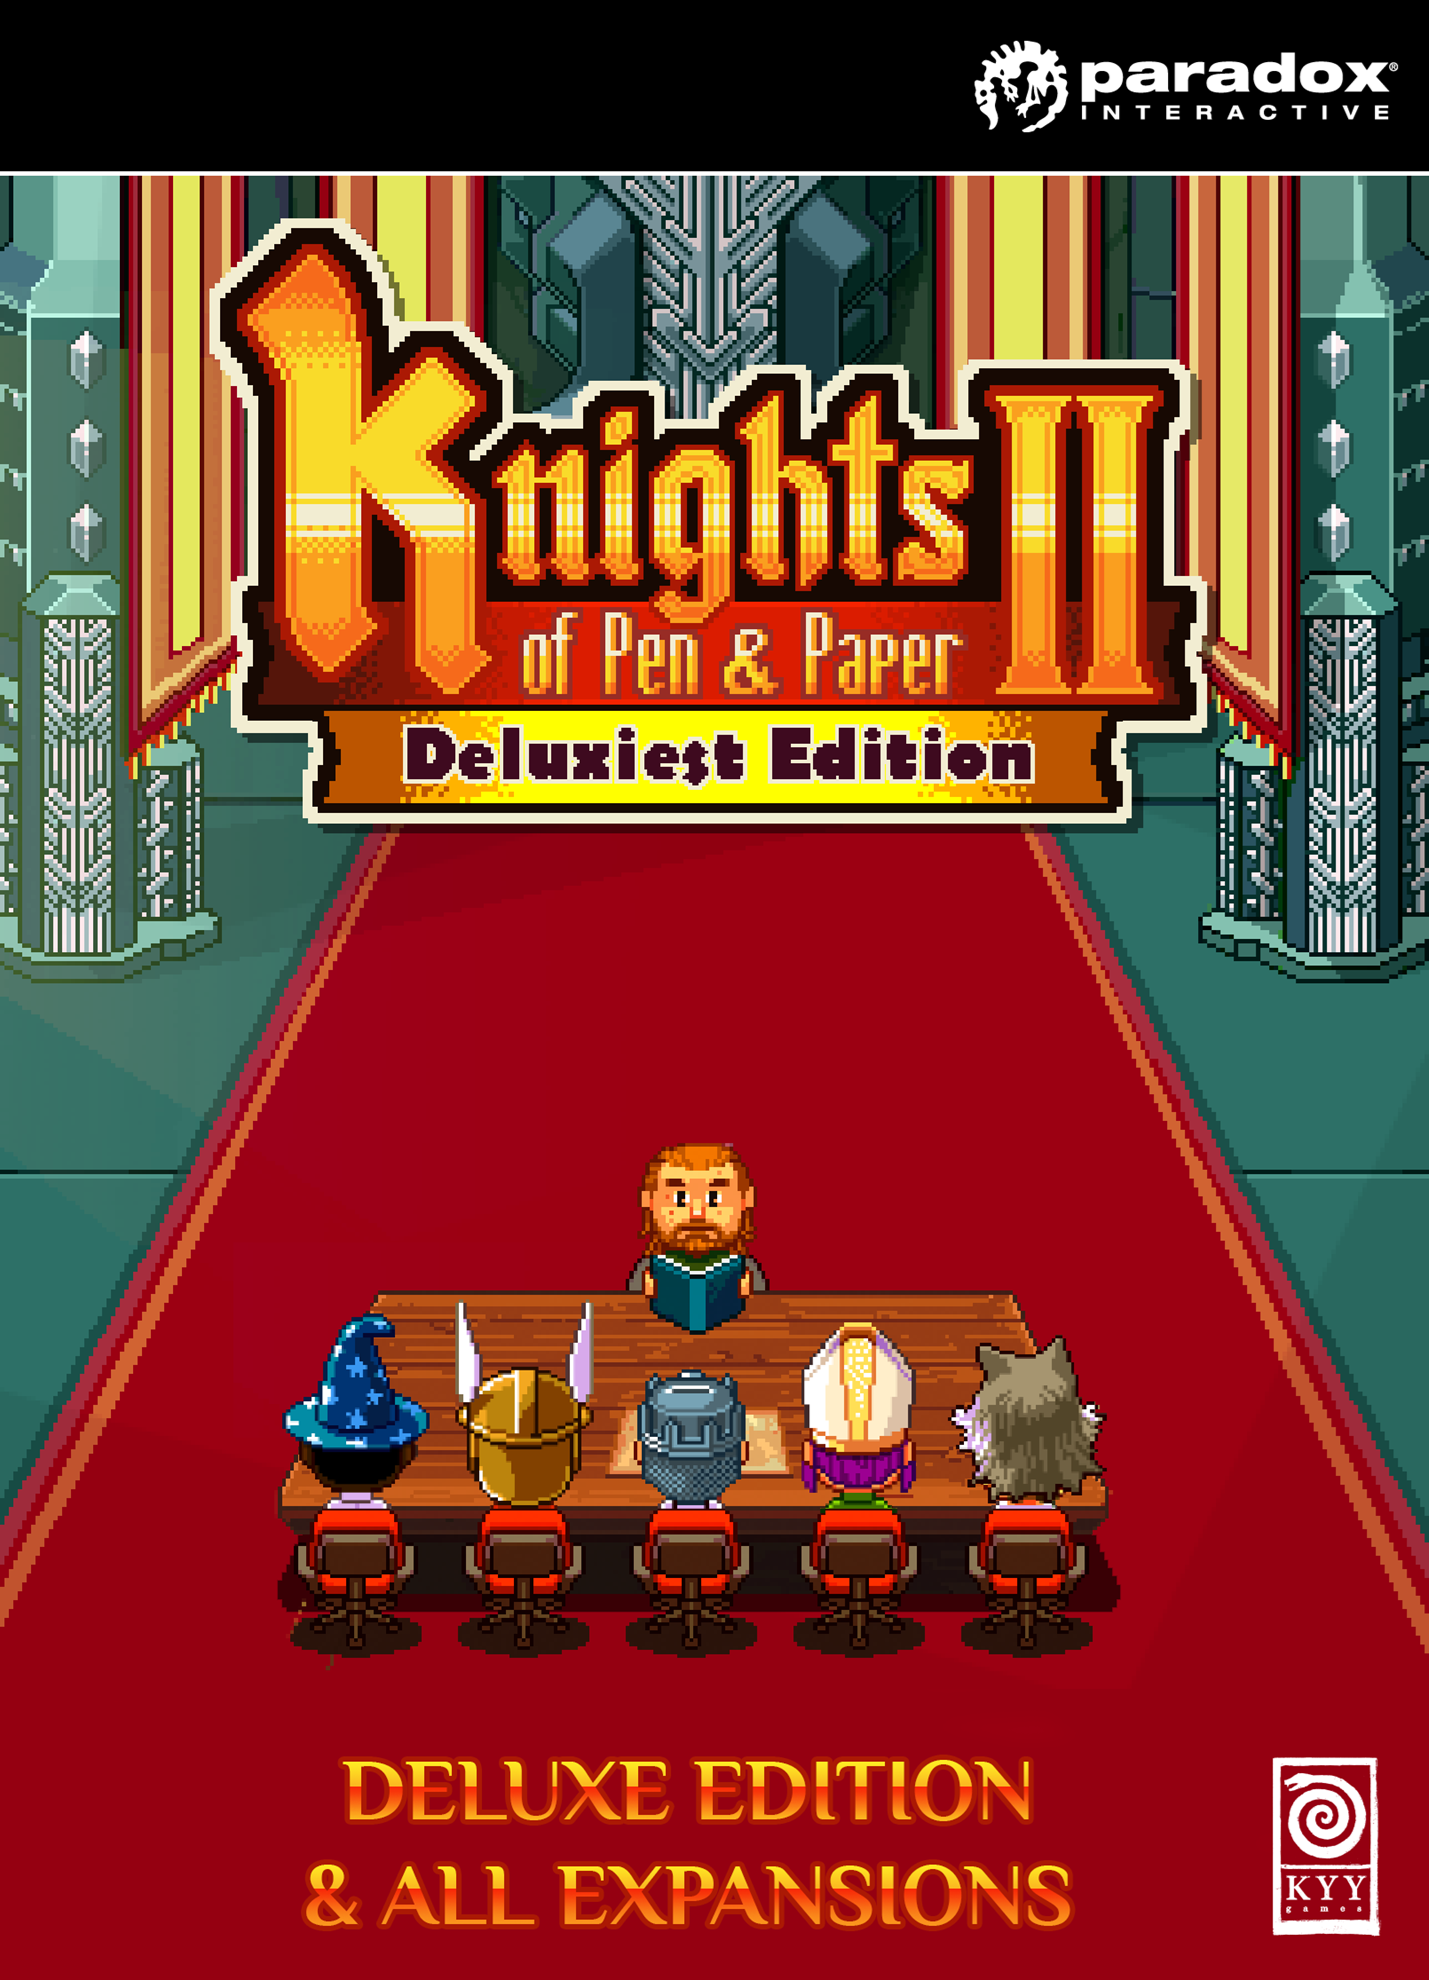 Knights of Pen and Paper 2 - Deluxiest Edition | ROW (a1fbac0e-c37e-4a58-9131-d65d84d68c49)